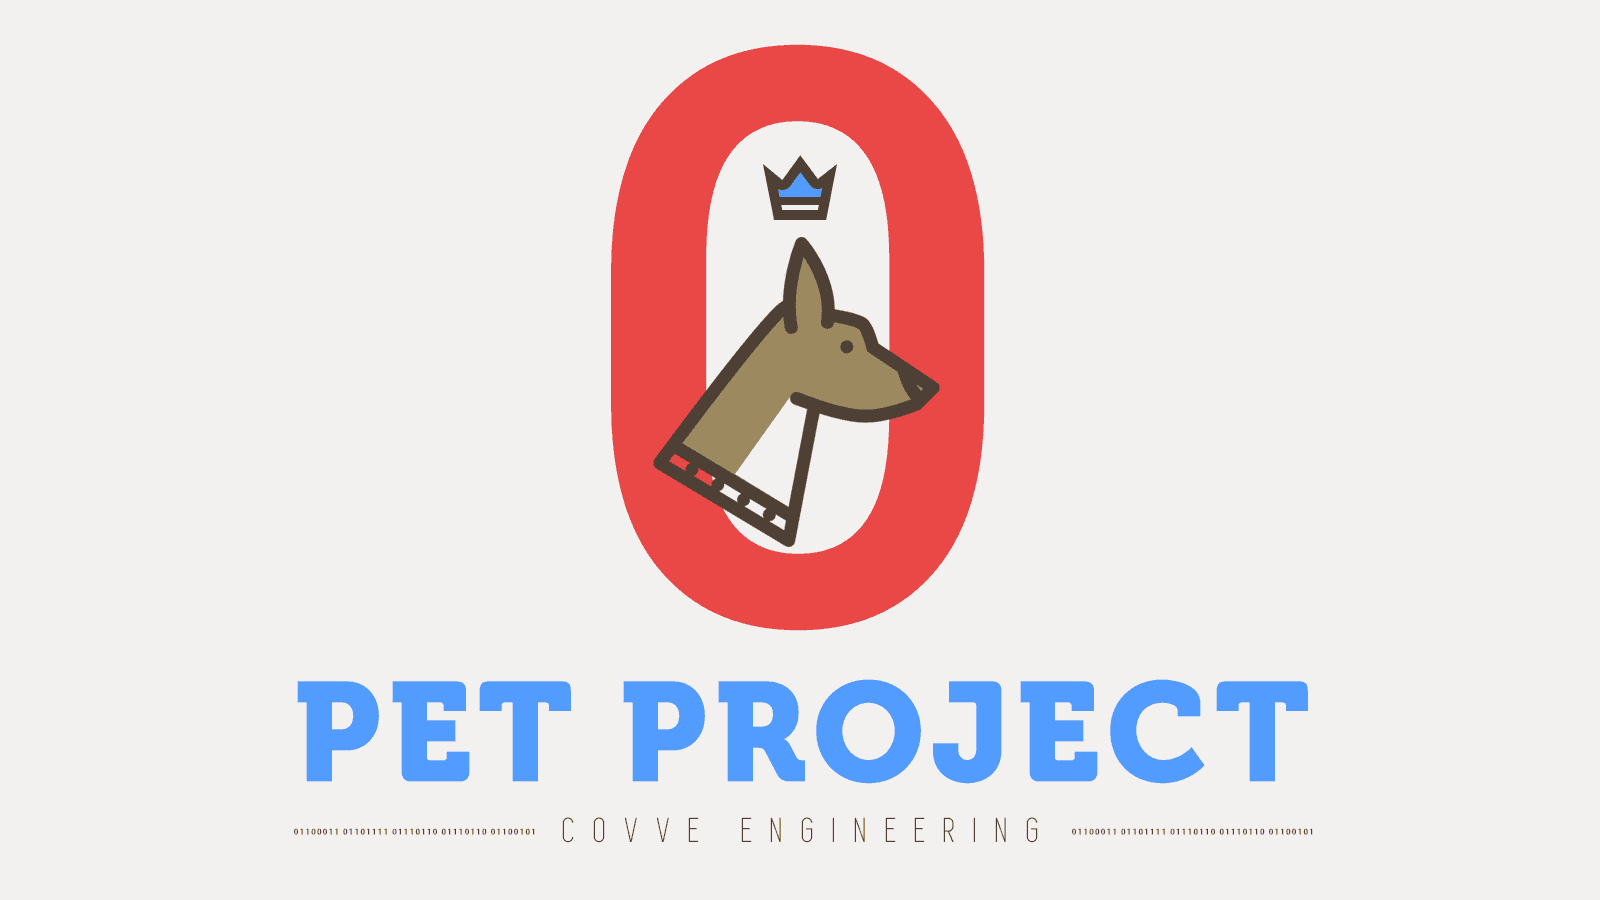 Pet project day - April 17 - Watson, event sourcing and cross platform dev ops